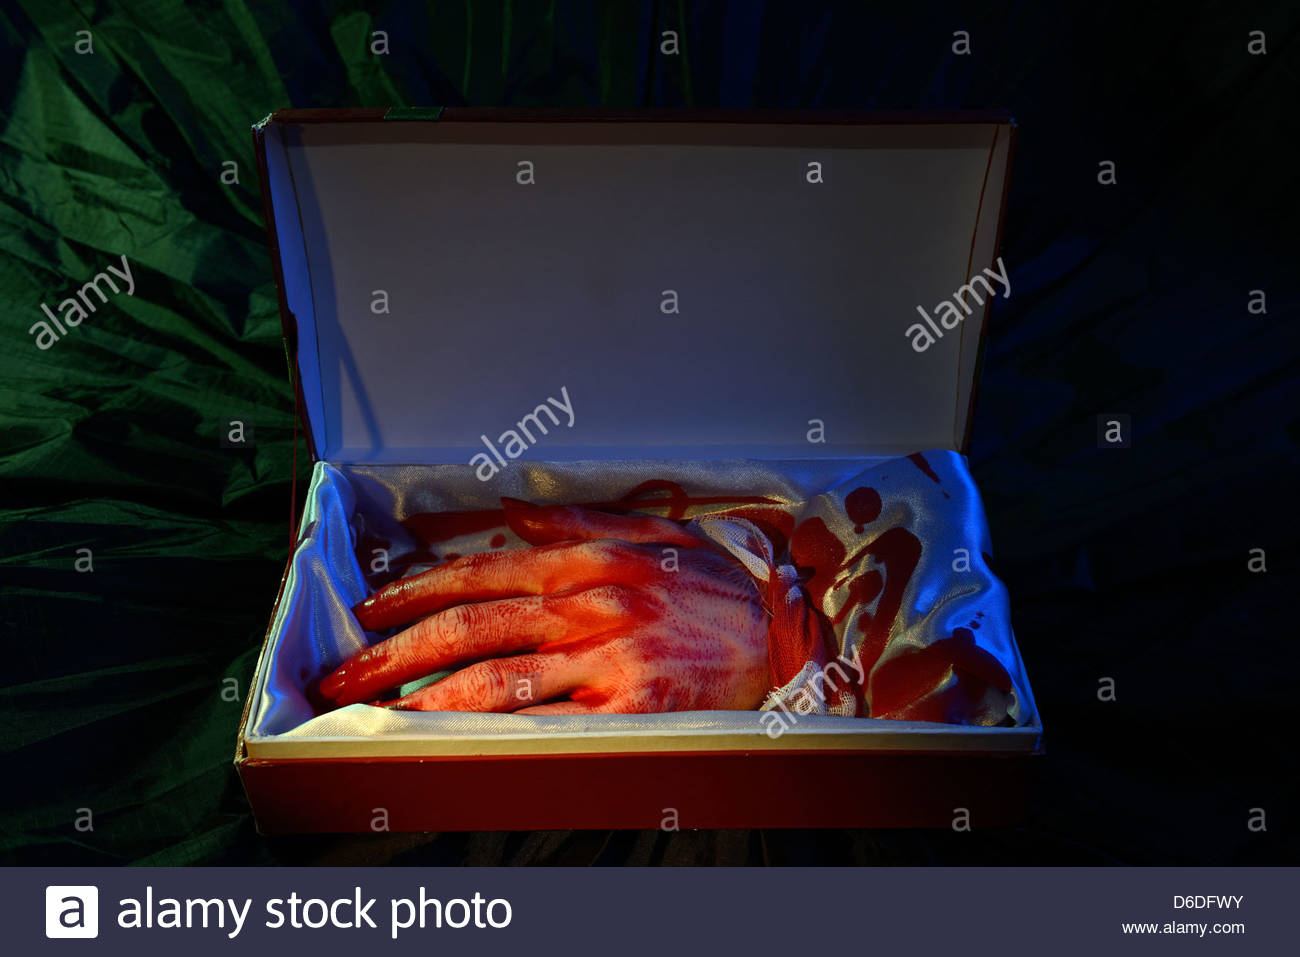 Cut bloody hand in open gift box. Blackmai, asking for ransom ...